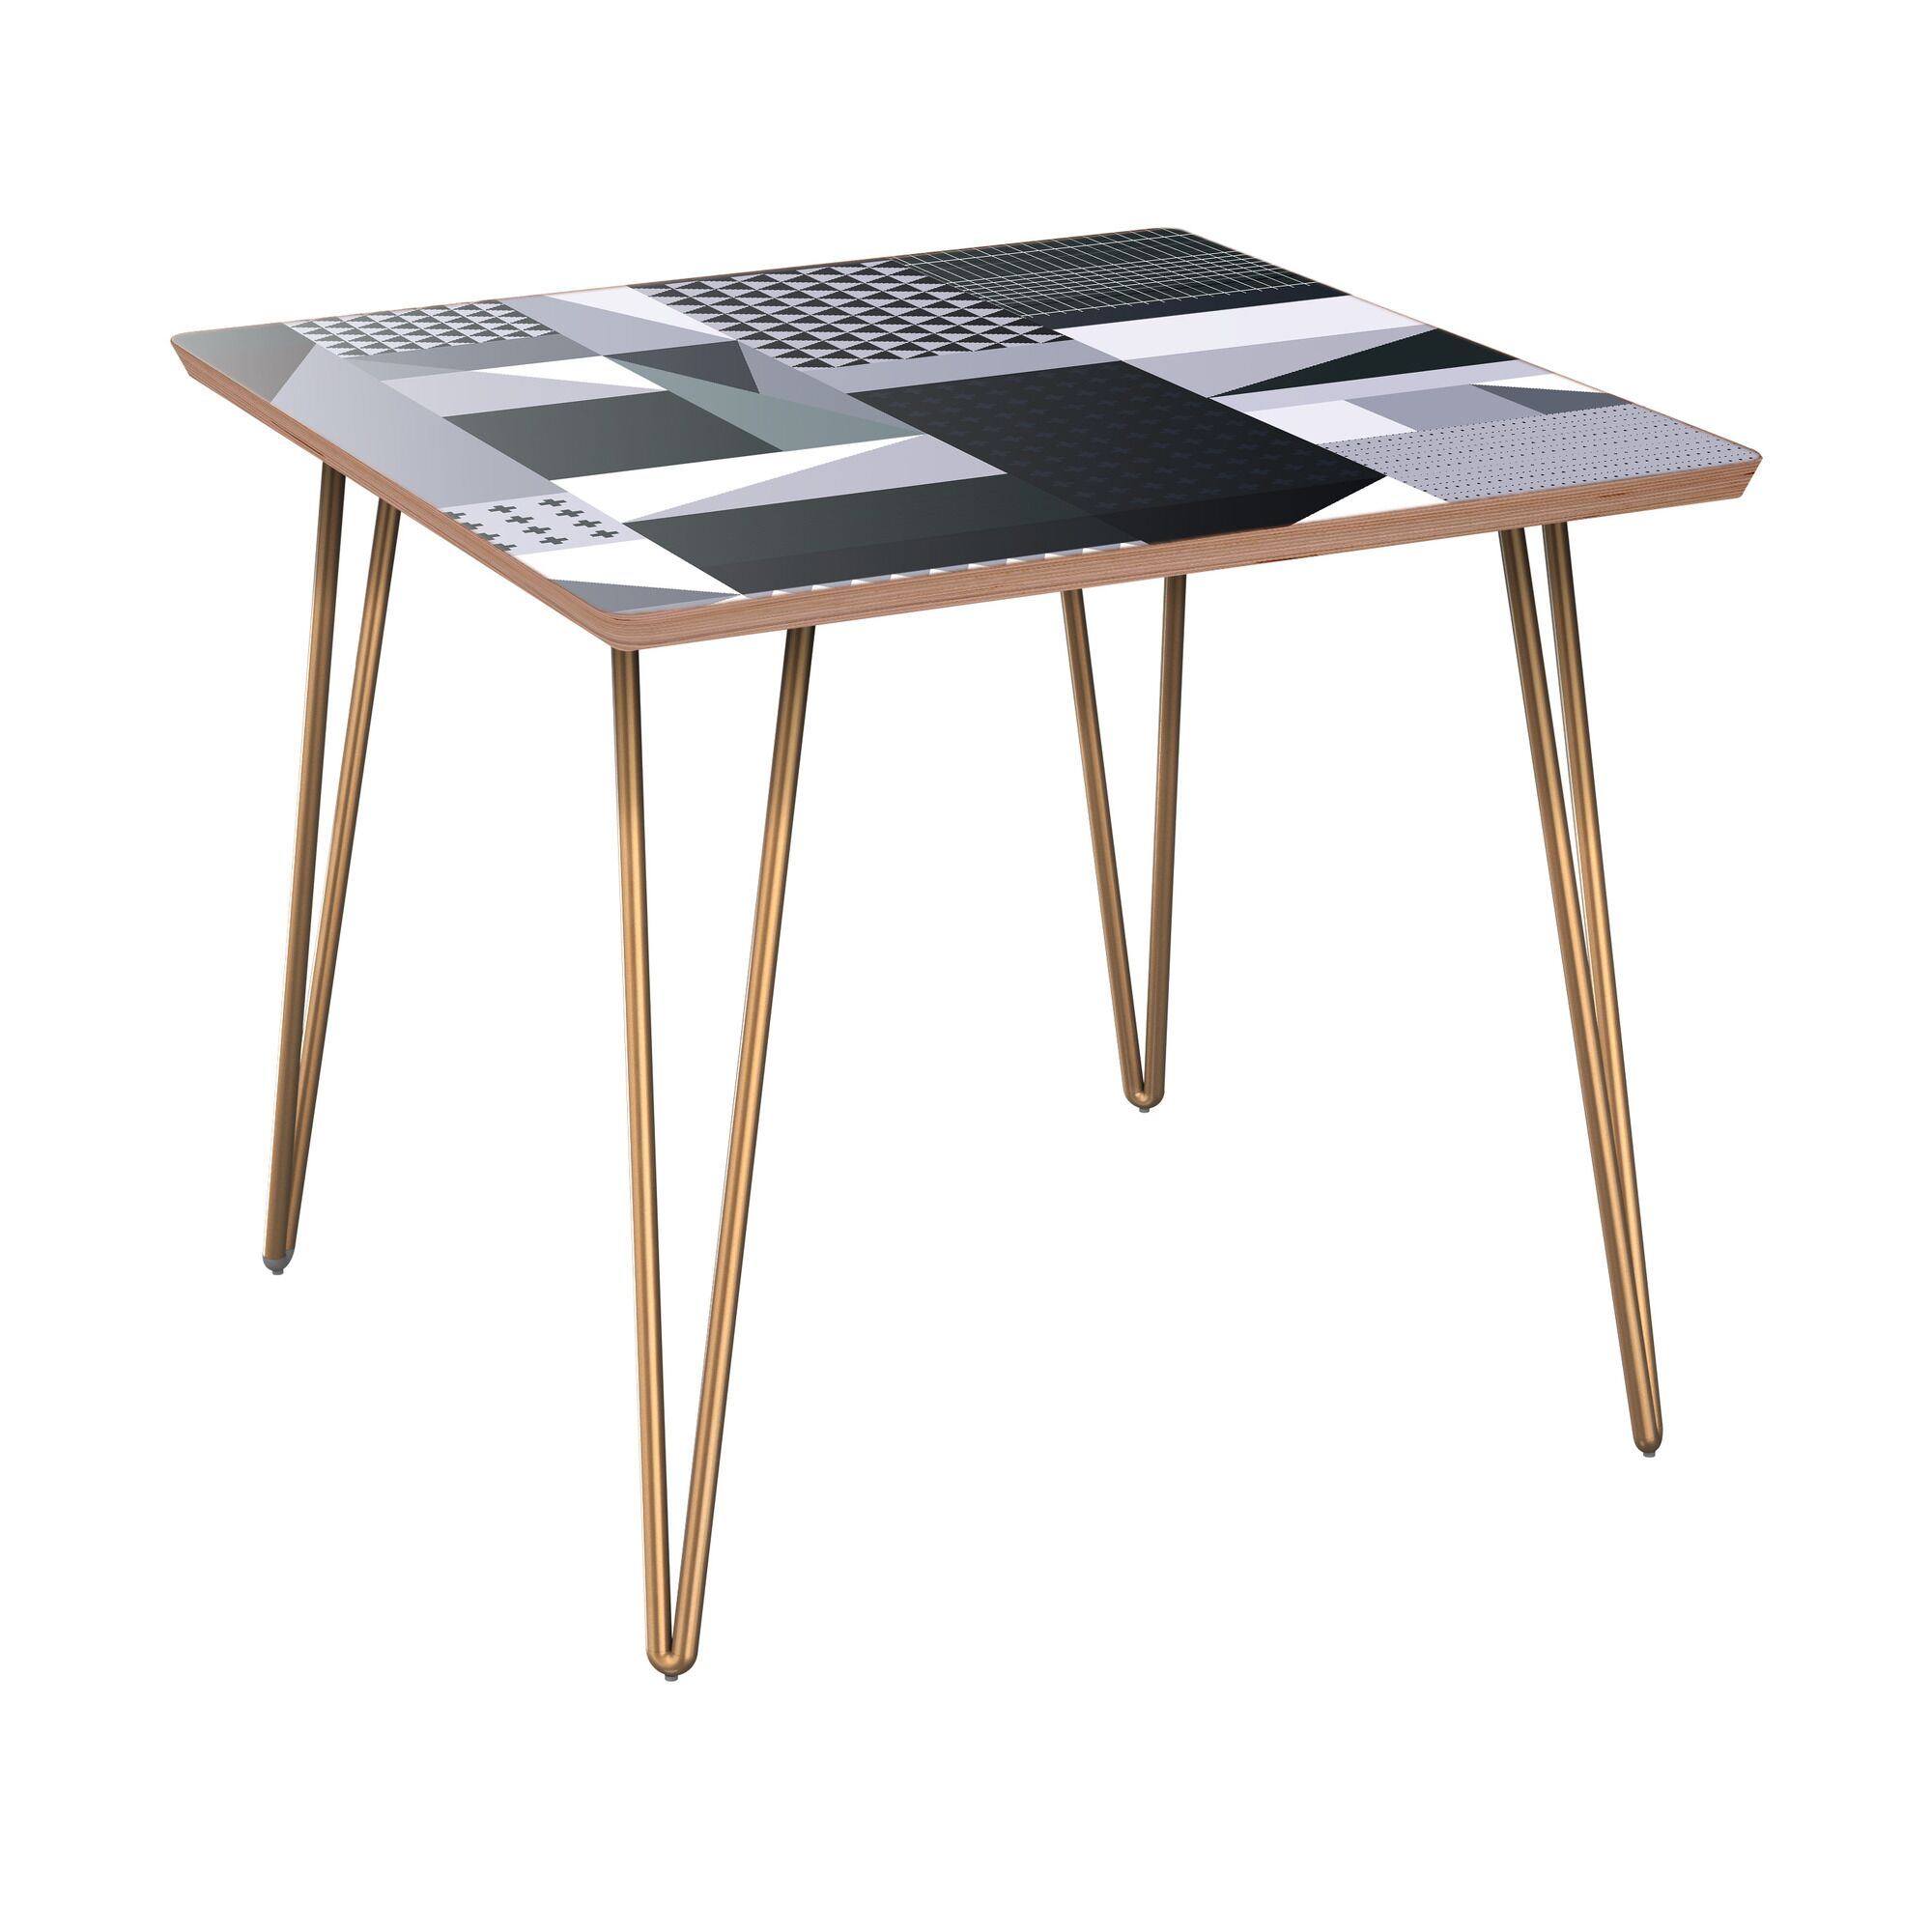 Killingworth End Table Table Base Color: Brass, Table Top Color: Walnut